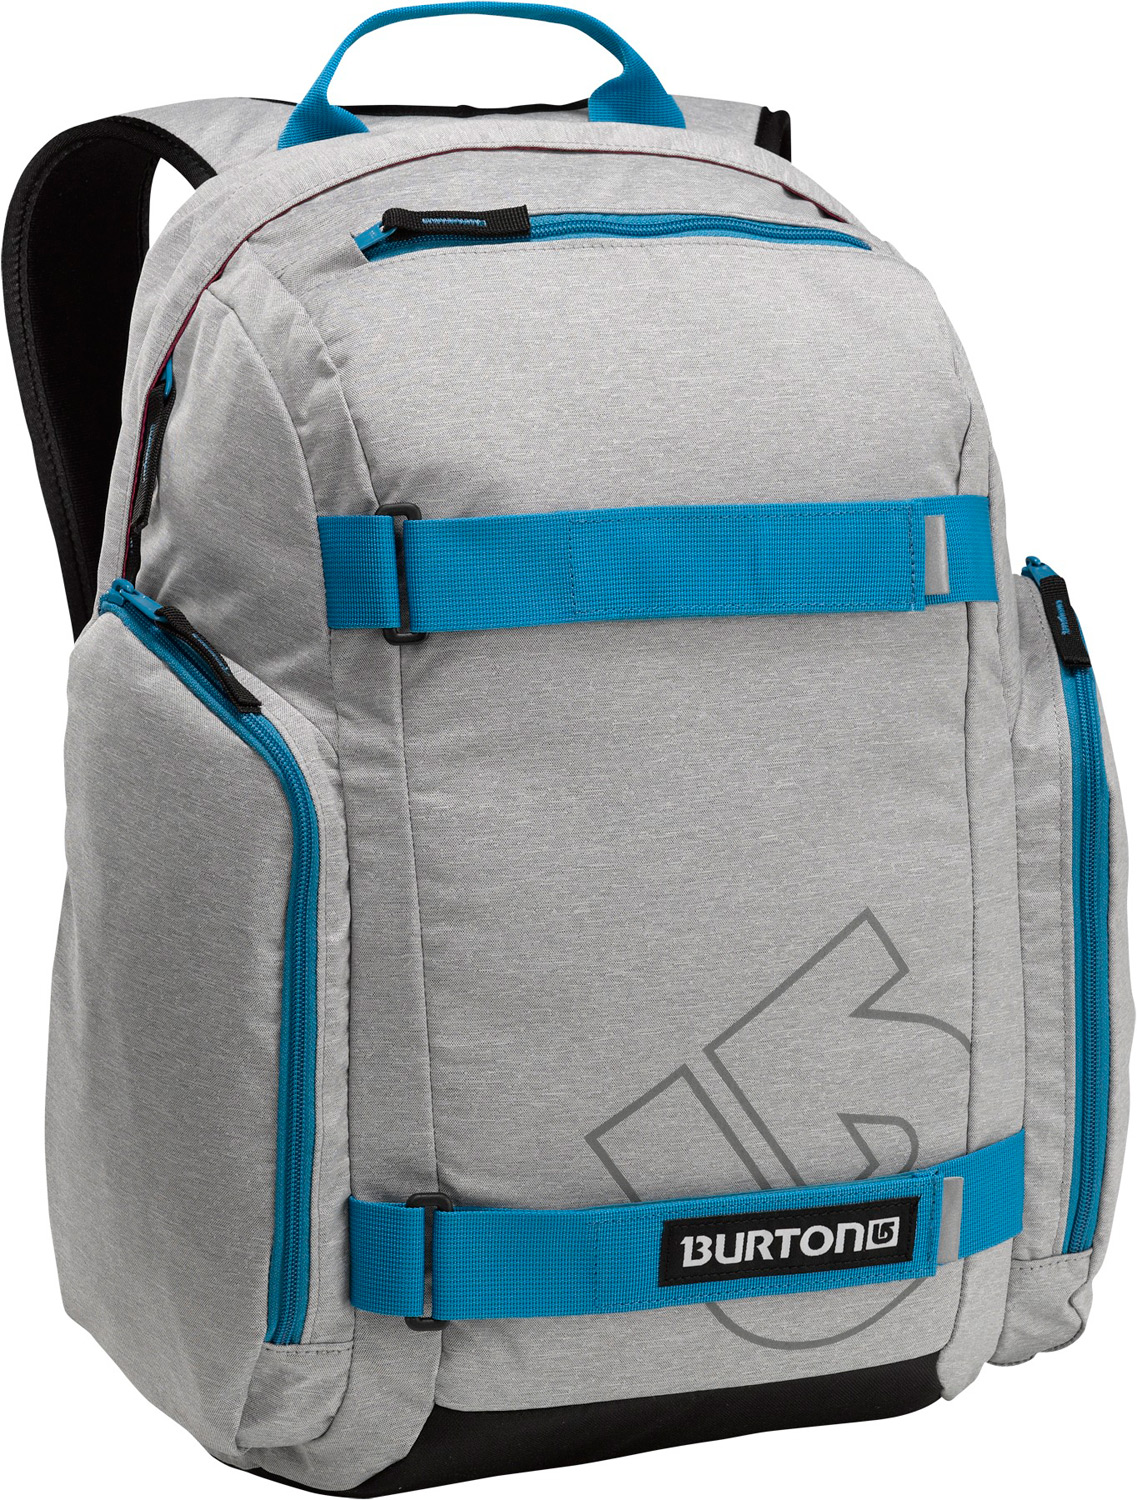 Snowboard Grind it, pump it, pack it-skate pack with built-in cooler. Your buddies will be tripping when you roll up dispensing cold ones from your Burton Metalhead Pack. With pockets for laptop and music, as well as straps for your skate and a built-in cooler compartment, this is the ultimate pack for laid-back afternoons at the spot.Key Features of the Burton Metalhead Backpack: Vertical Board Carry Laptop Compartments Bag Dimensions 18.5in x 12in x 8in 1.65 lbs [0.75kg] 26L [18.5in x 12in x 8in] [47cm x 31cm x 22cm] 300D Polyester Dobby 600D Polyester Adjustable Straps - $37.95